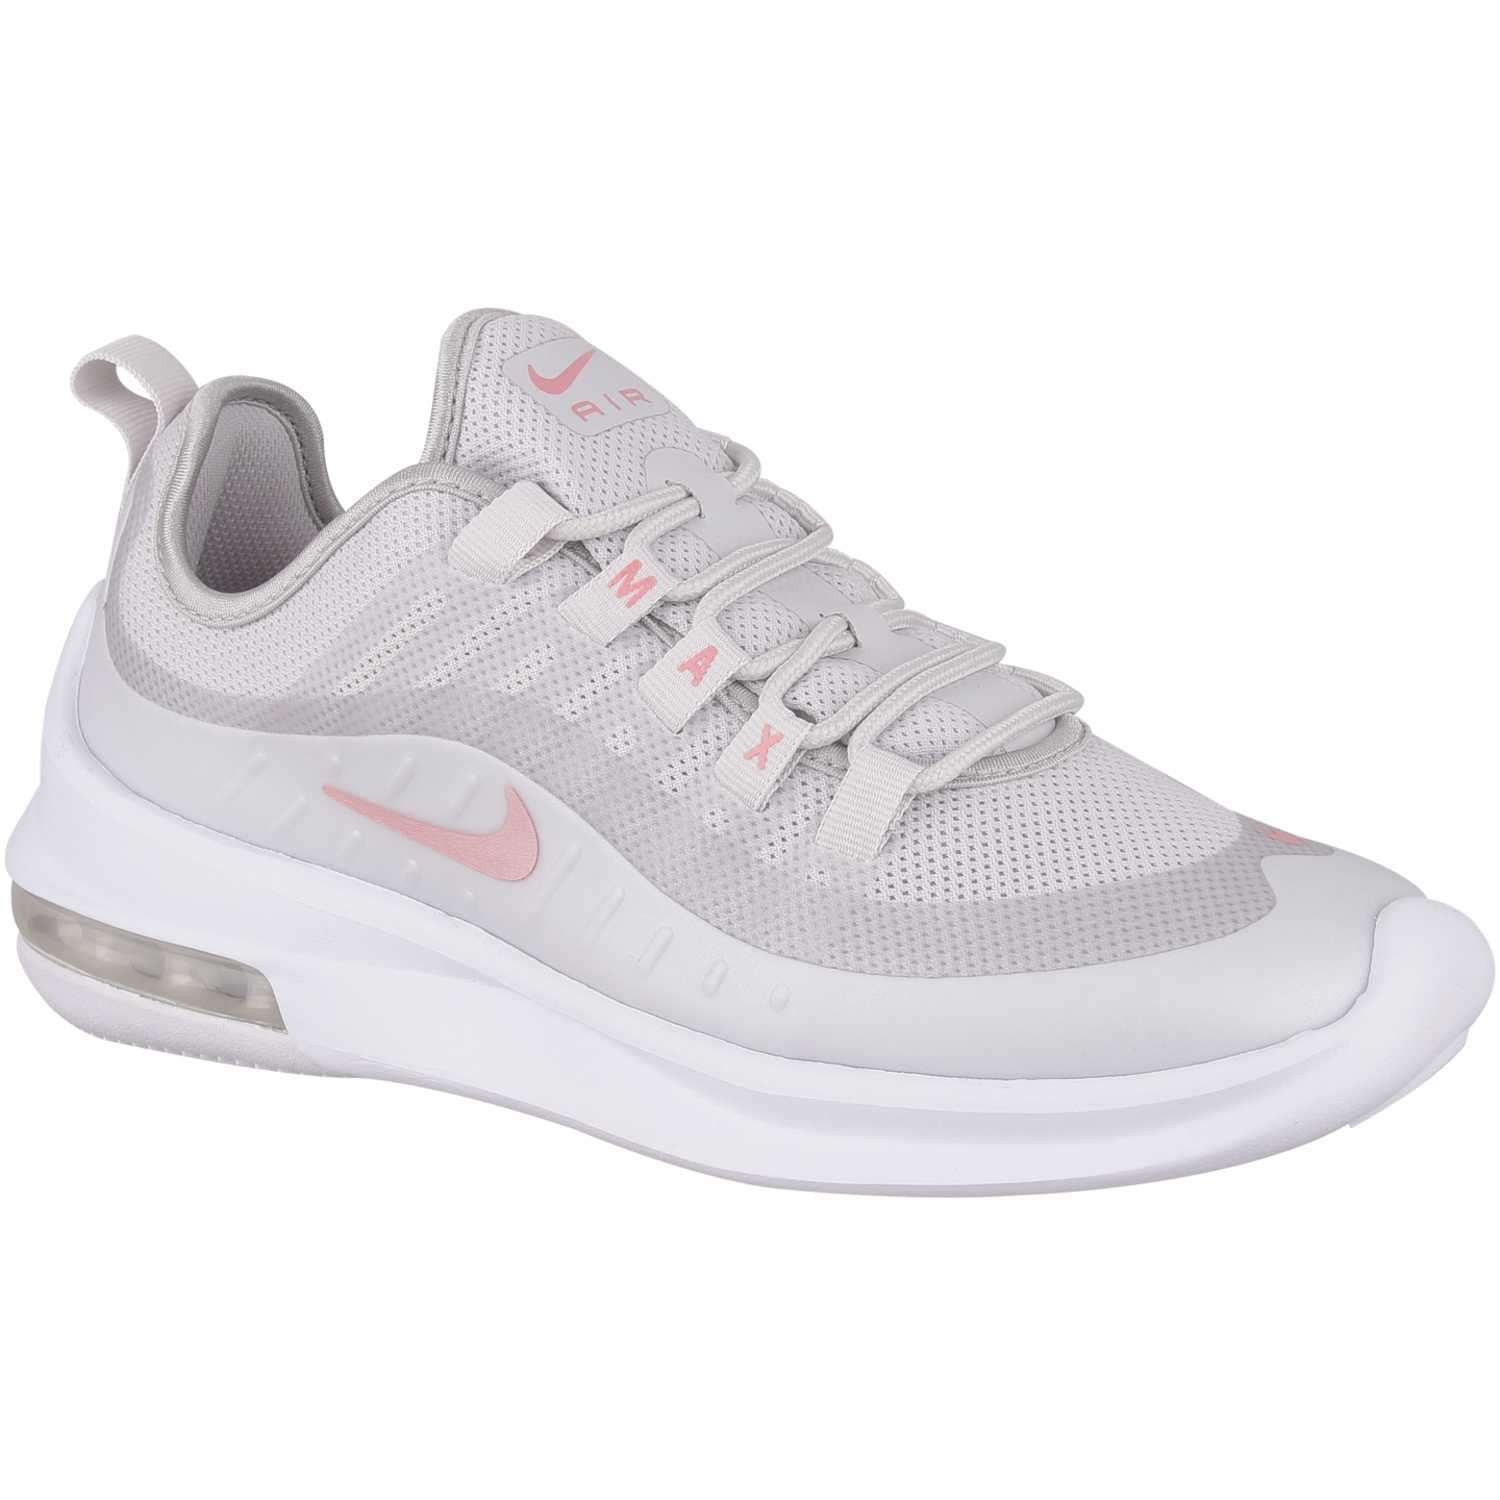 Nike Mujer De Gris Air Wmns Blanco Max Axis Cuña f7gyvYb6